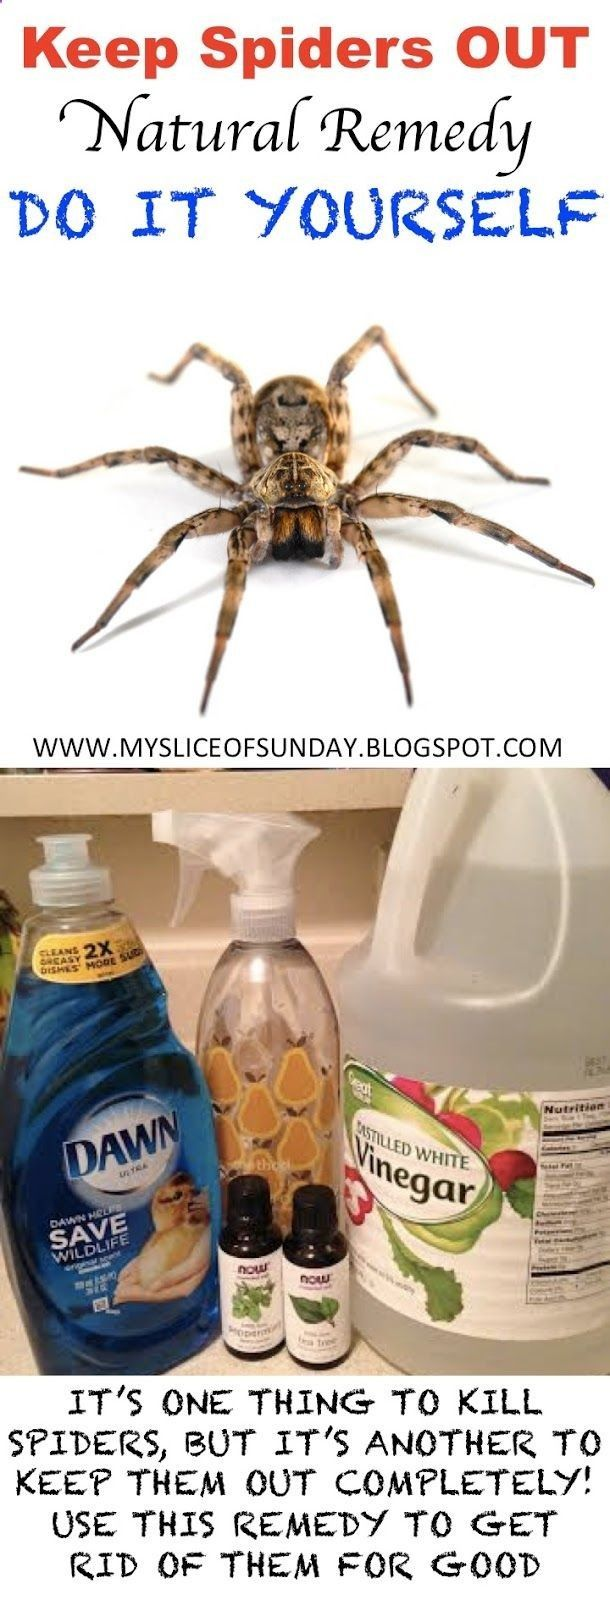 3-4 drops peppermint essential oil, 3-4 drops tea tree oil, 3-4 drops dish soap, 1 TBL white vinegar,place ingred in spray bottle and fill up rest with warm water- spray in cracks and crevices where spiders are hiding